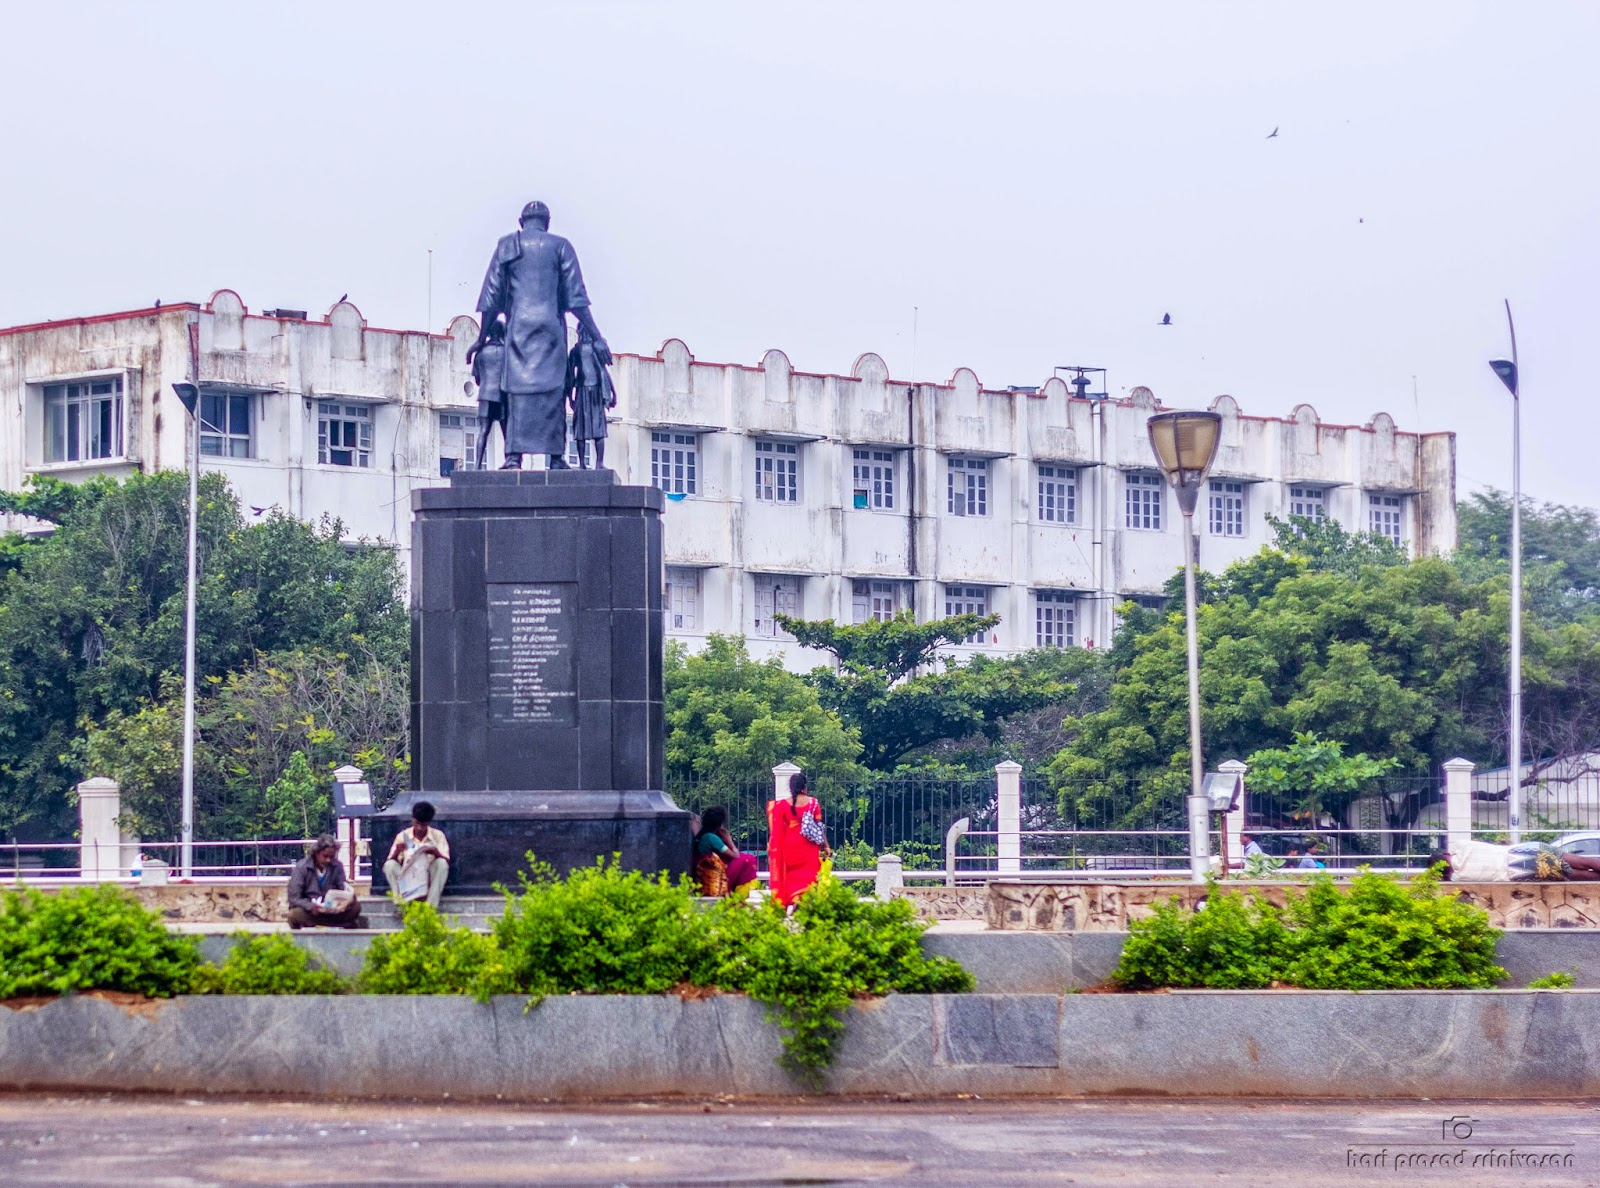 Photo of Kamarajar statue located in Chennai beach. Photo taken from behind the statue on which Kamarajar holds two kids one on each side. Photo taken on a cloudy day.